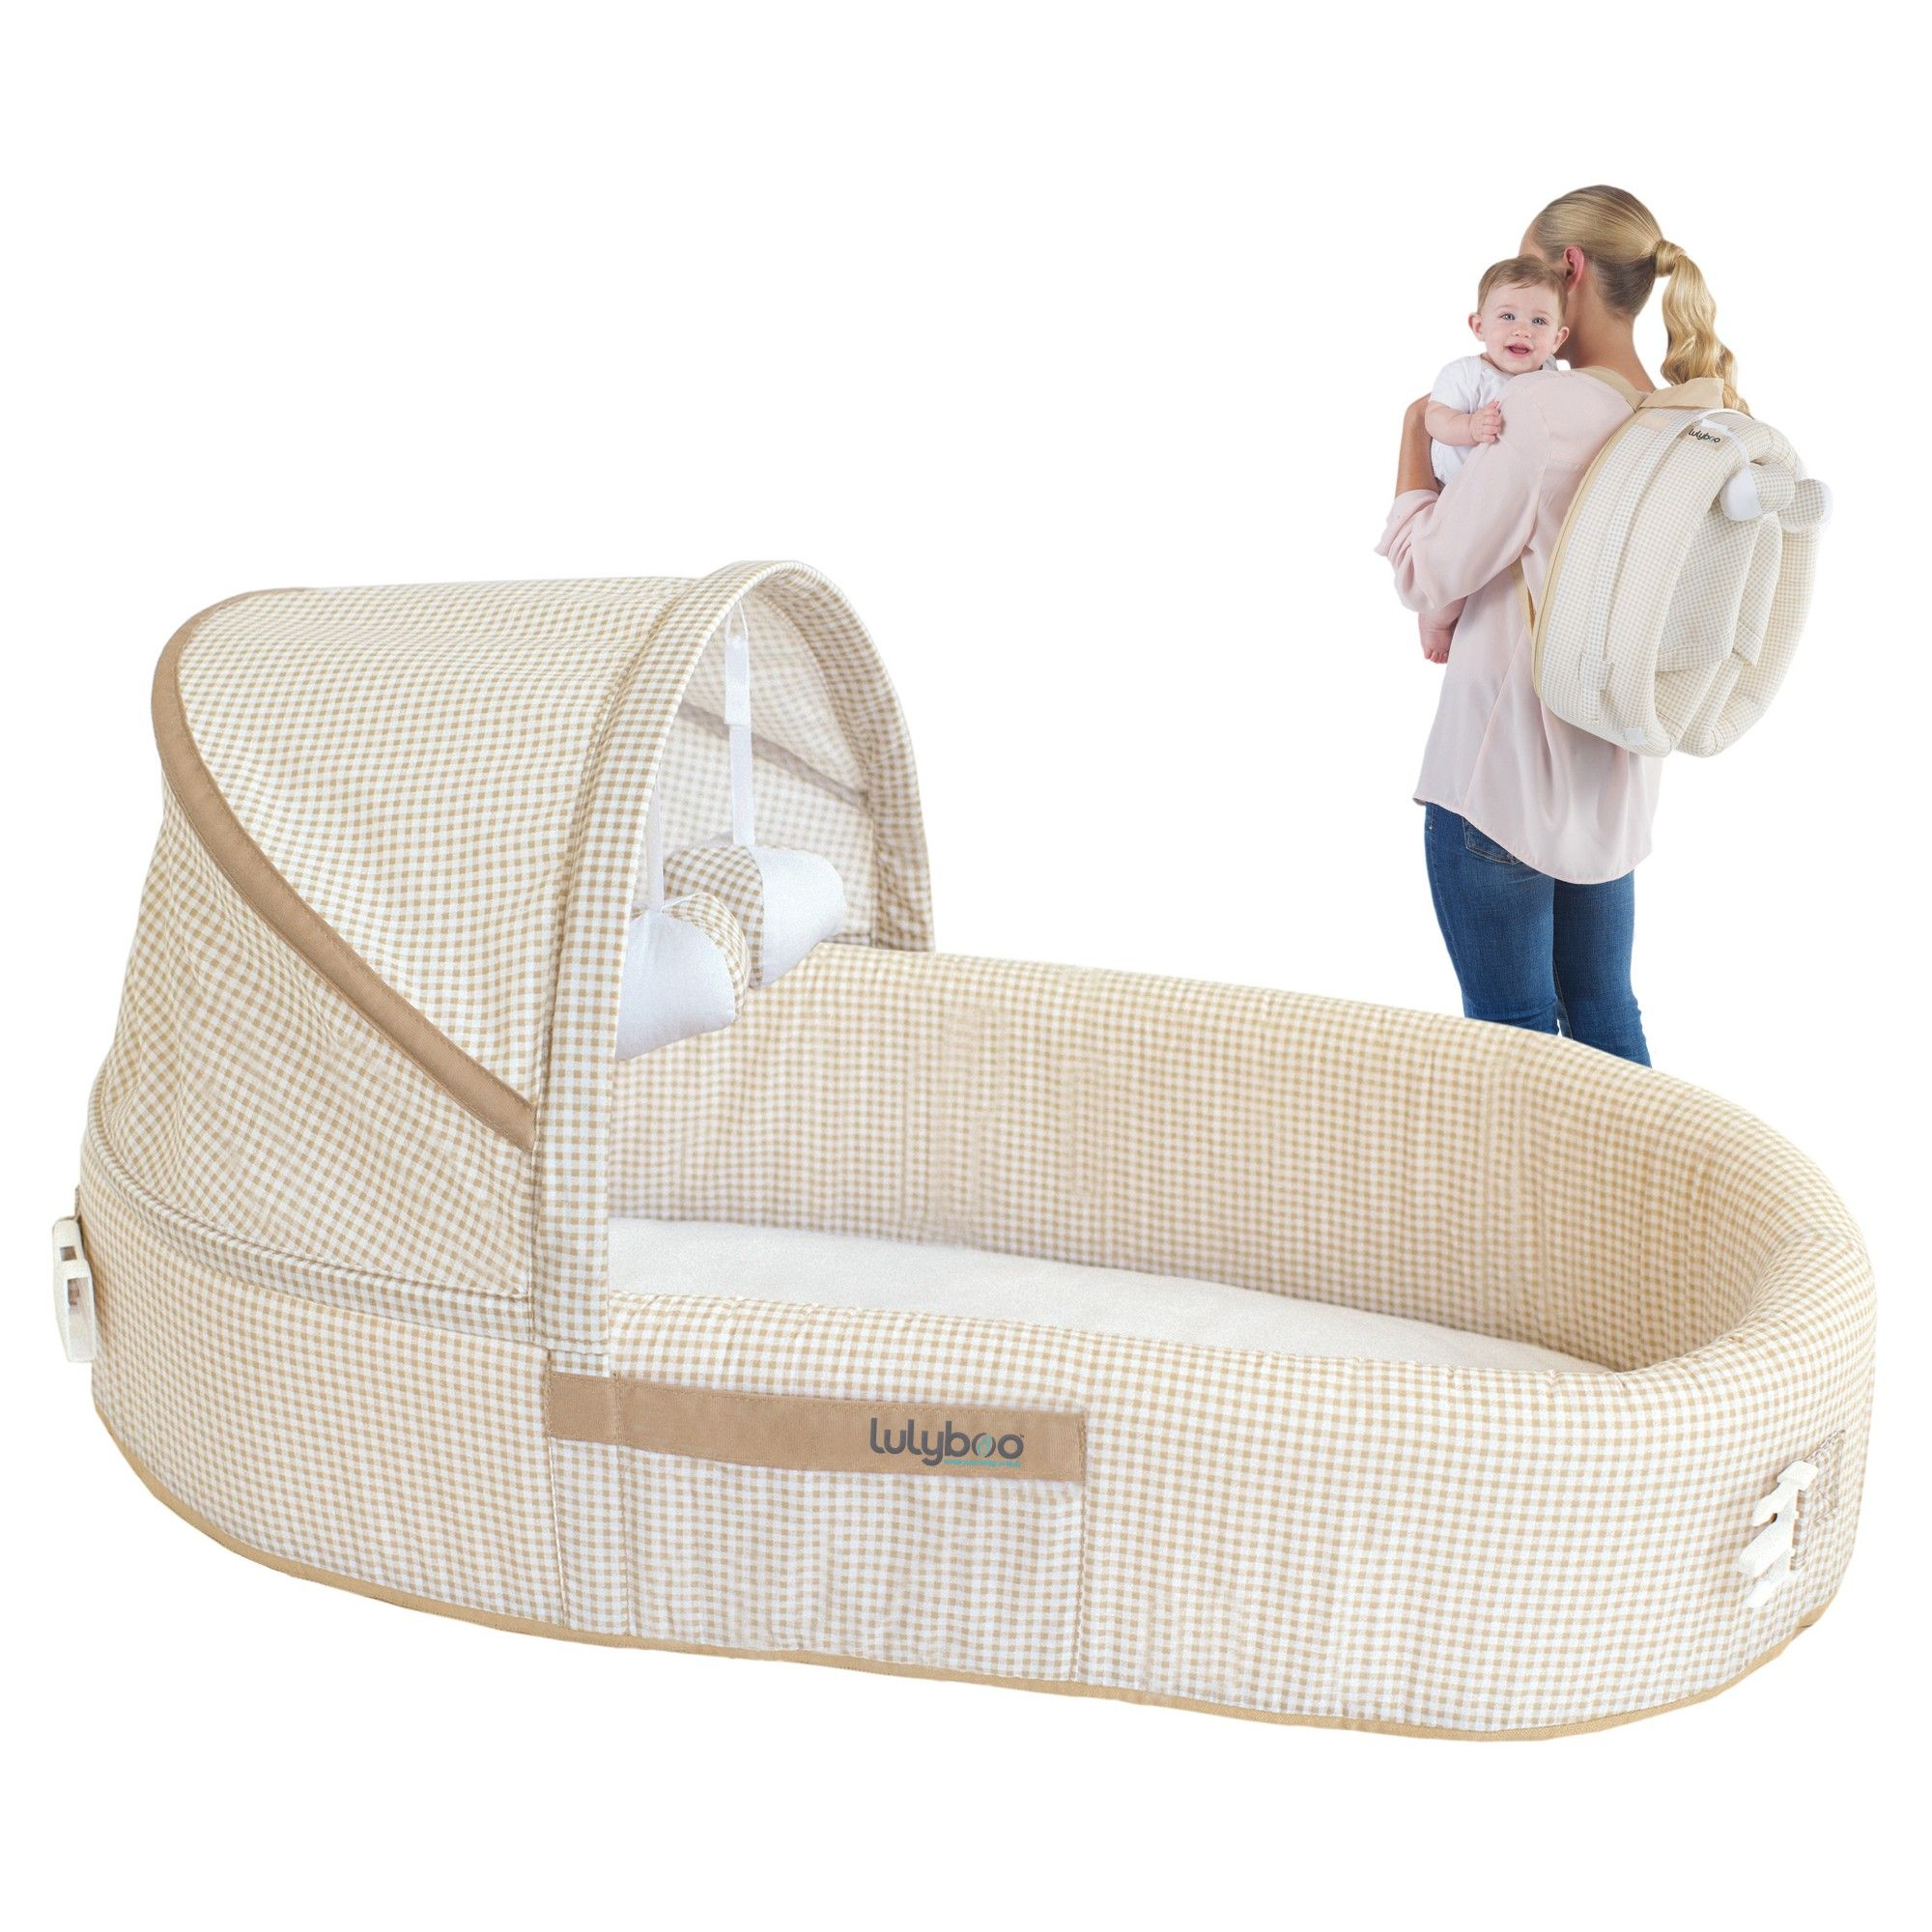 Lulyboo Baby Lounge - Natural. Lulyboo Portable Baby Bassinet To-Go Infant  Co-Sleeper ... 359fa348f